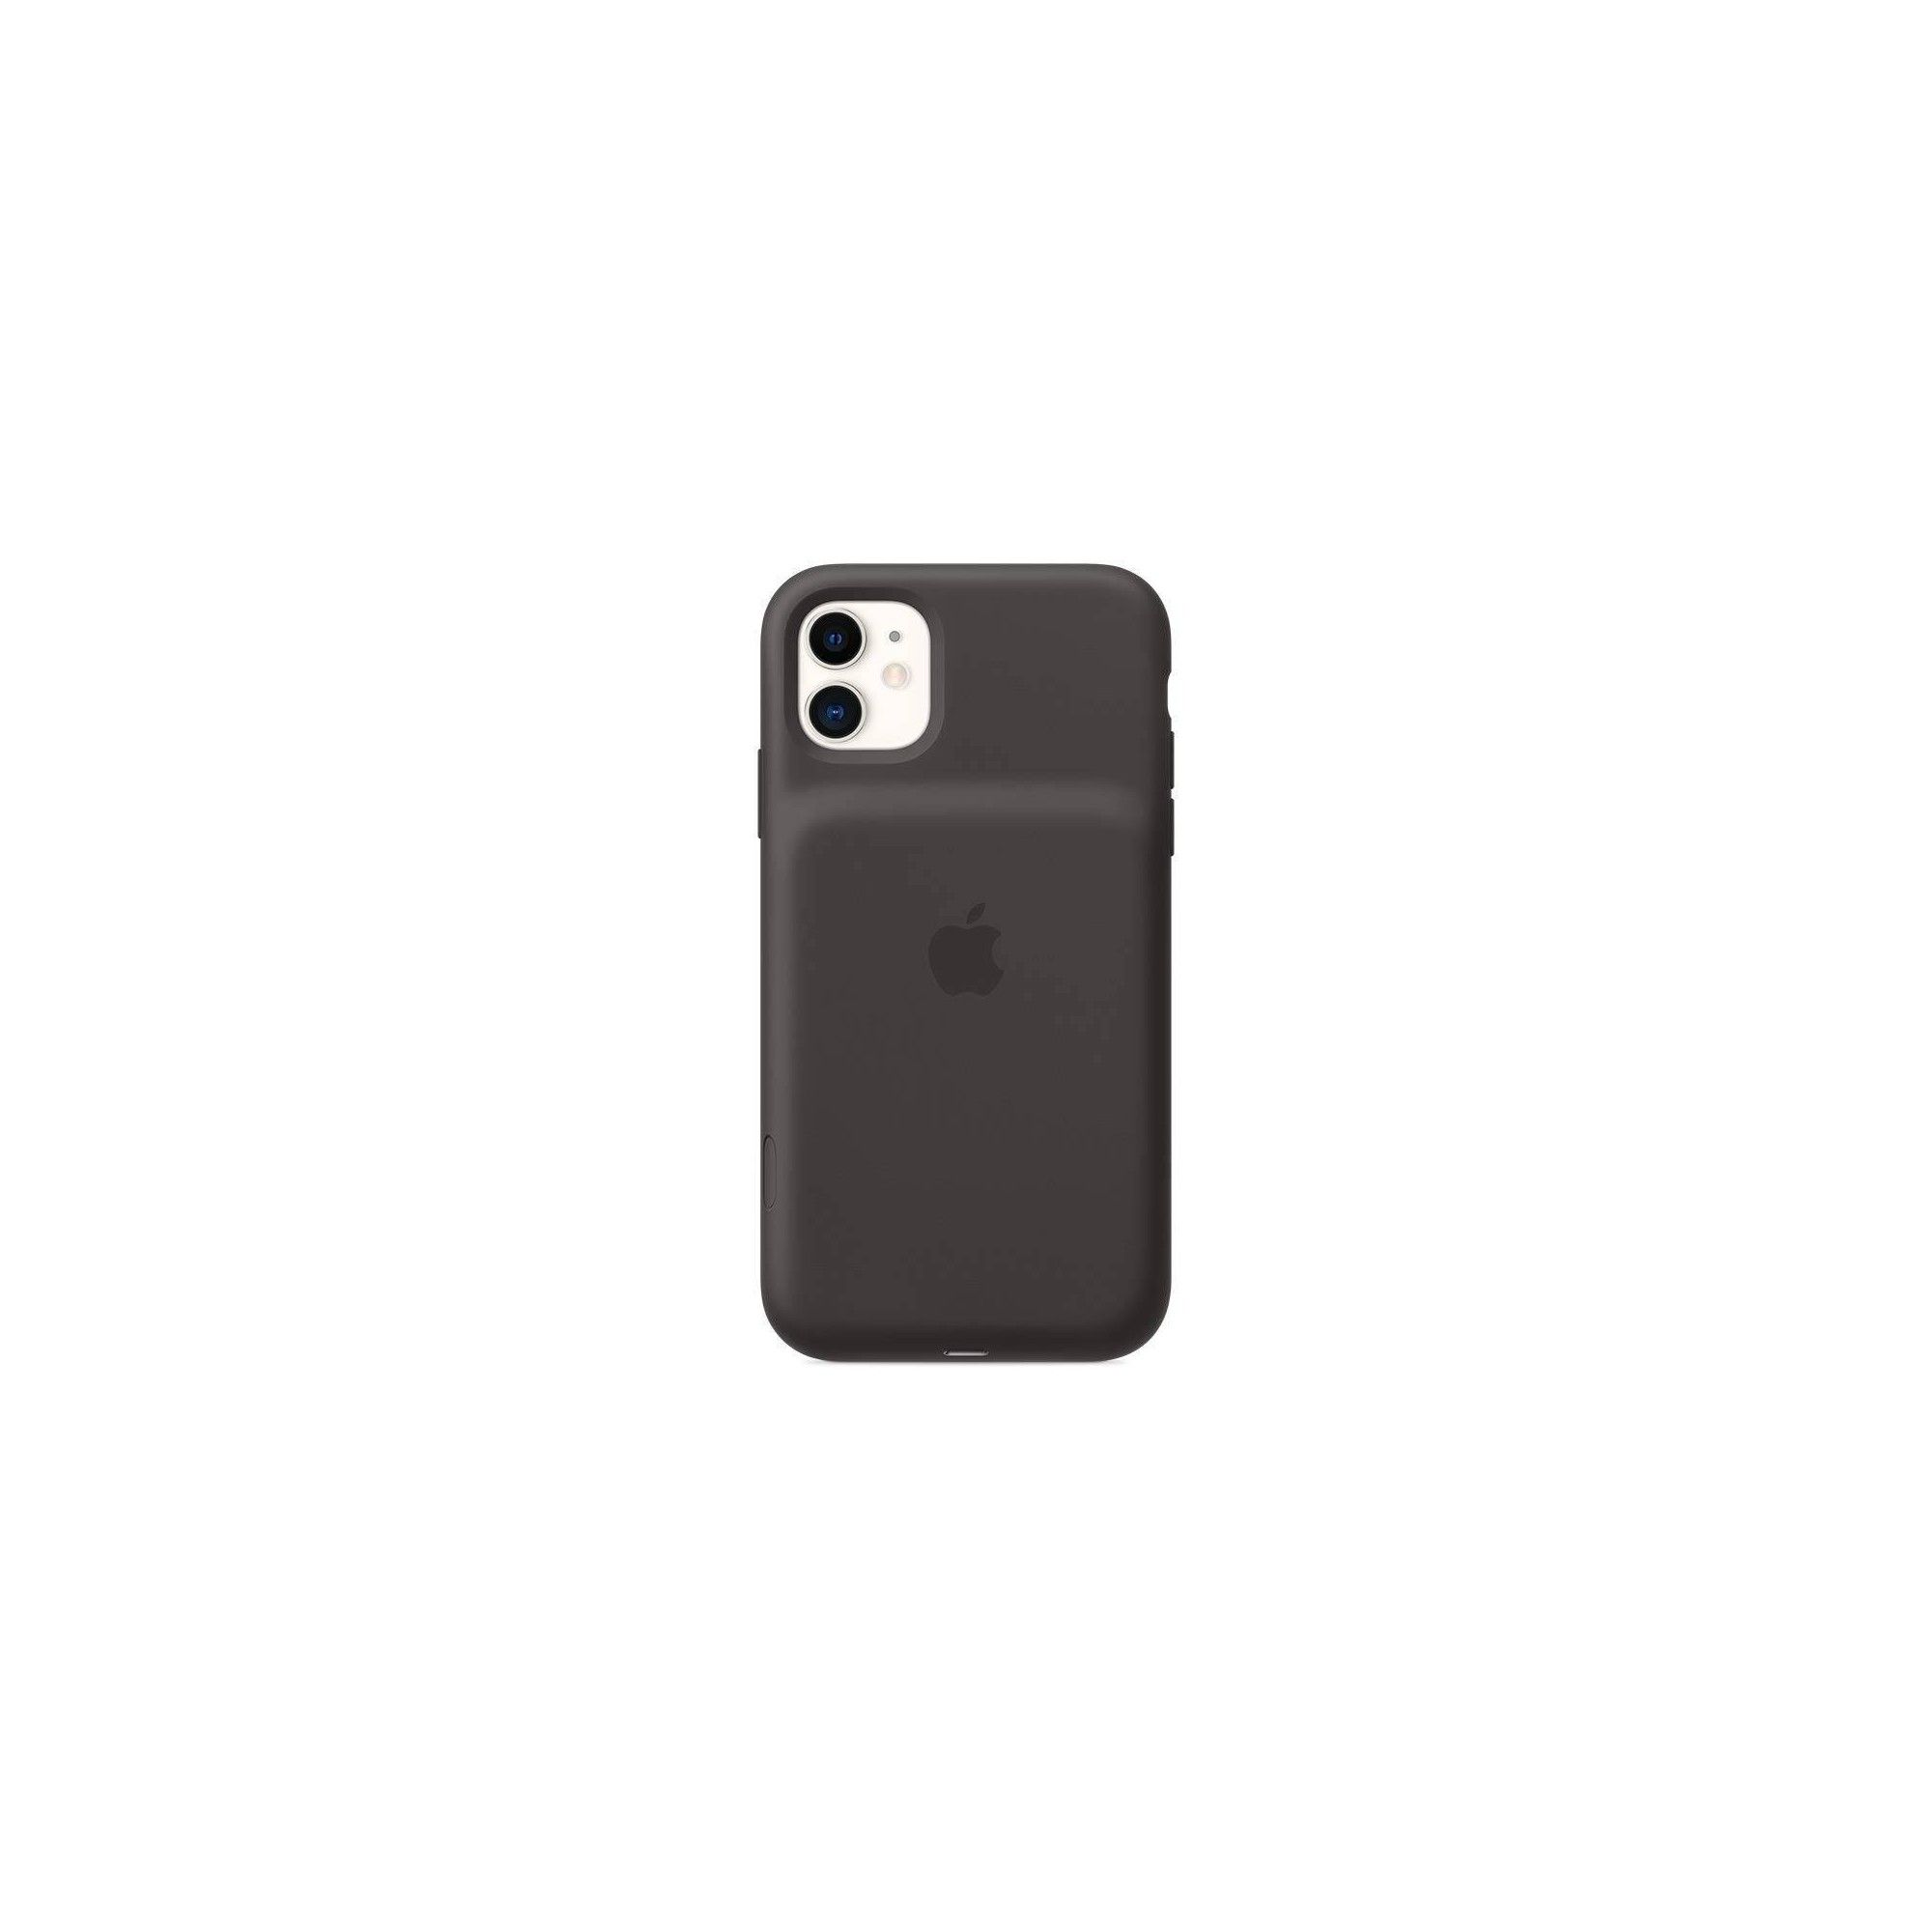 Apple Iphone 11 Smart Battery Case With Wireless Charging Black Iphone Battery Cases Apple Iphone